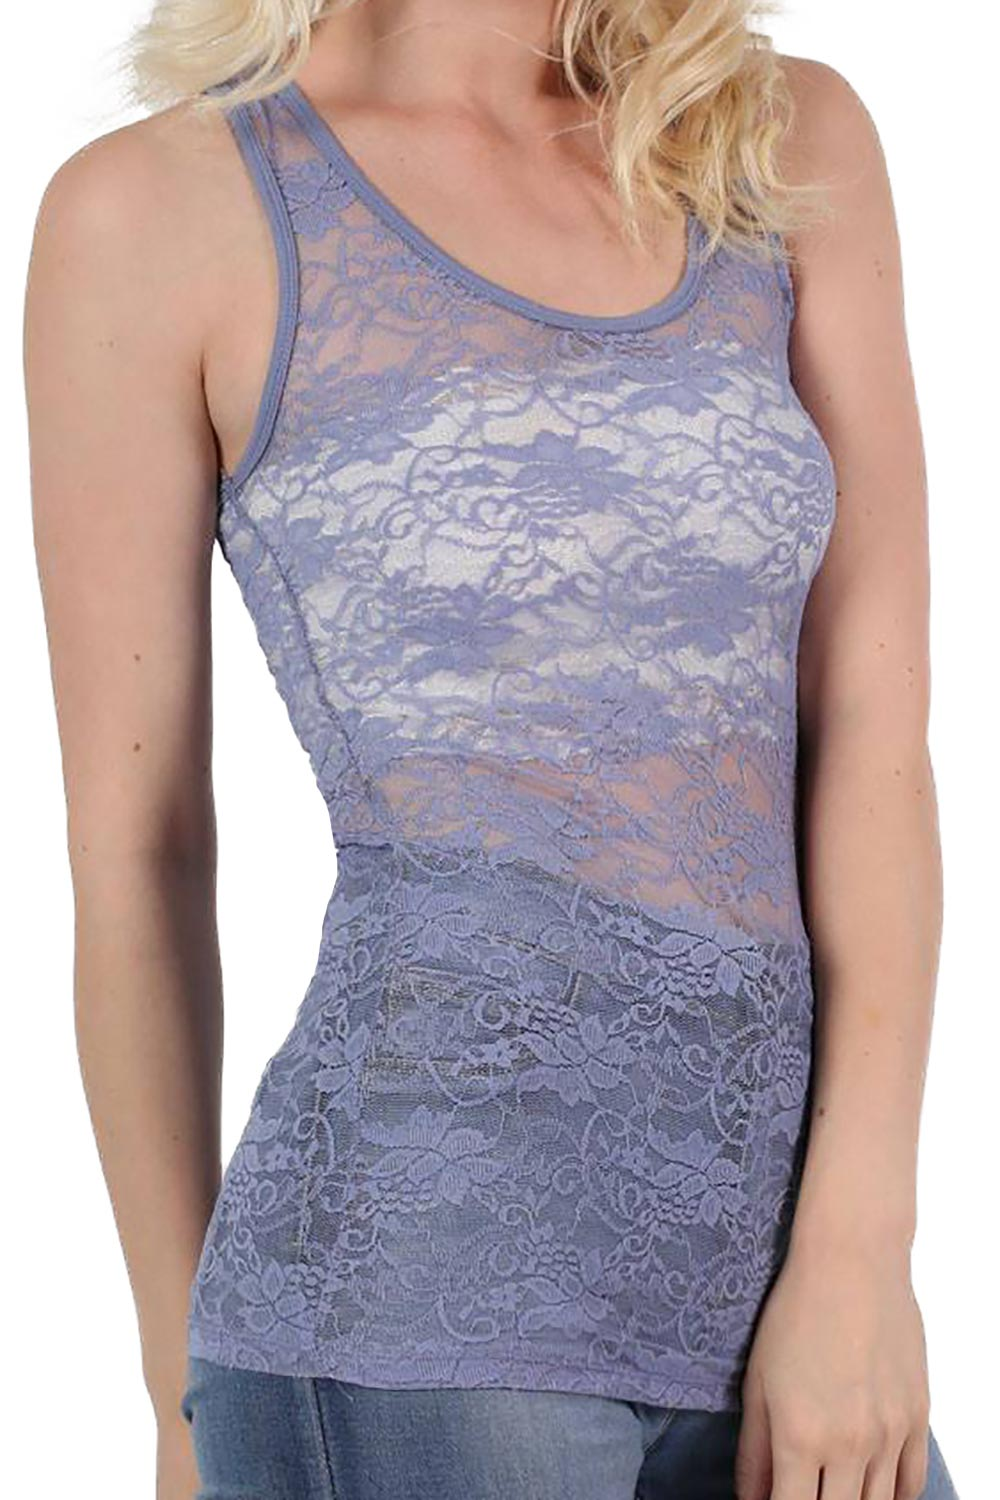 Floral Lace Print Vest Top in Pale Blue